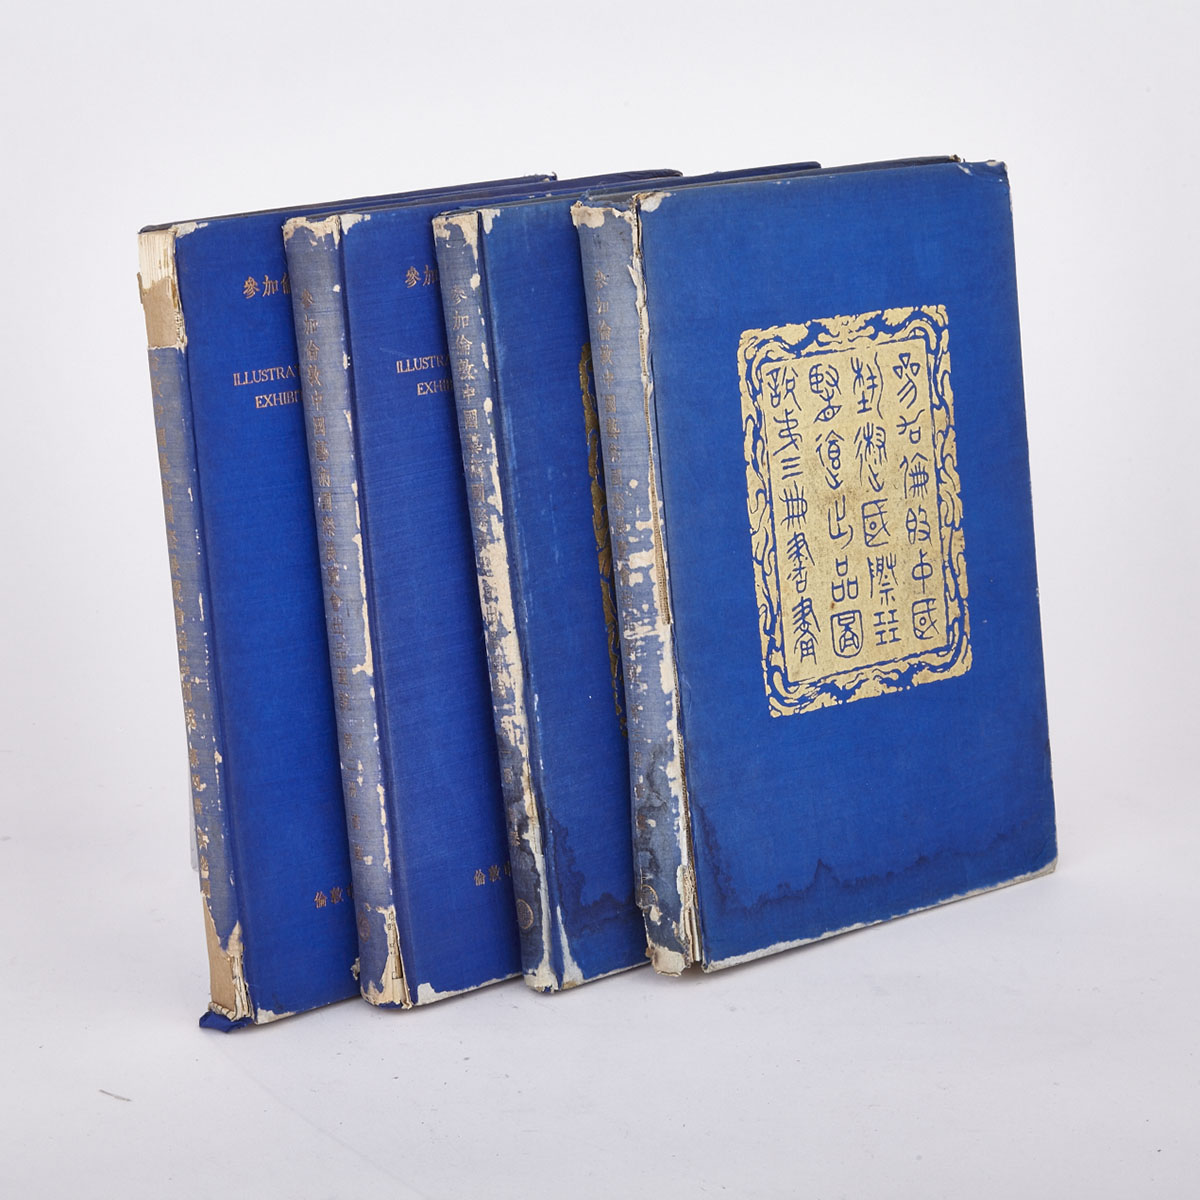 Illustrated Catalogue of Chinese Government Exhibits for the International Exhibition of Chinese Art in London (Four Volumes)